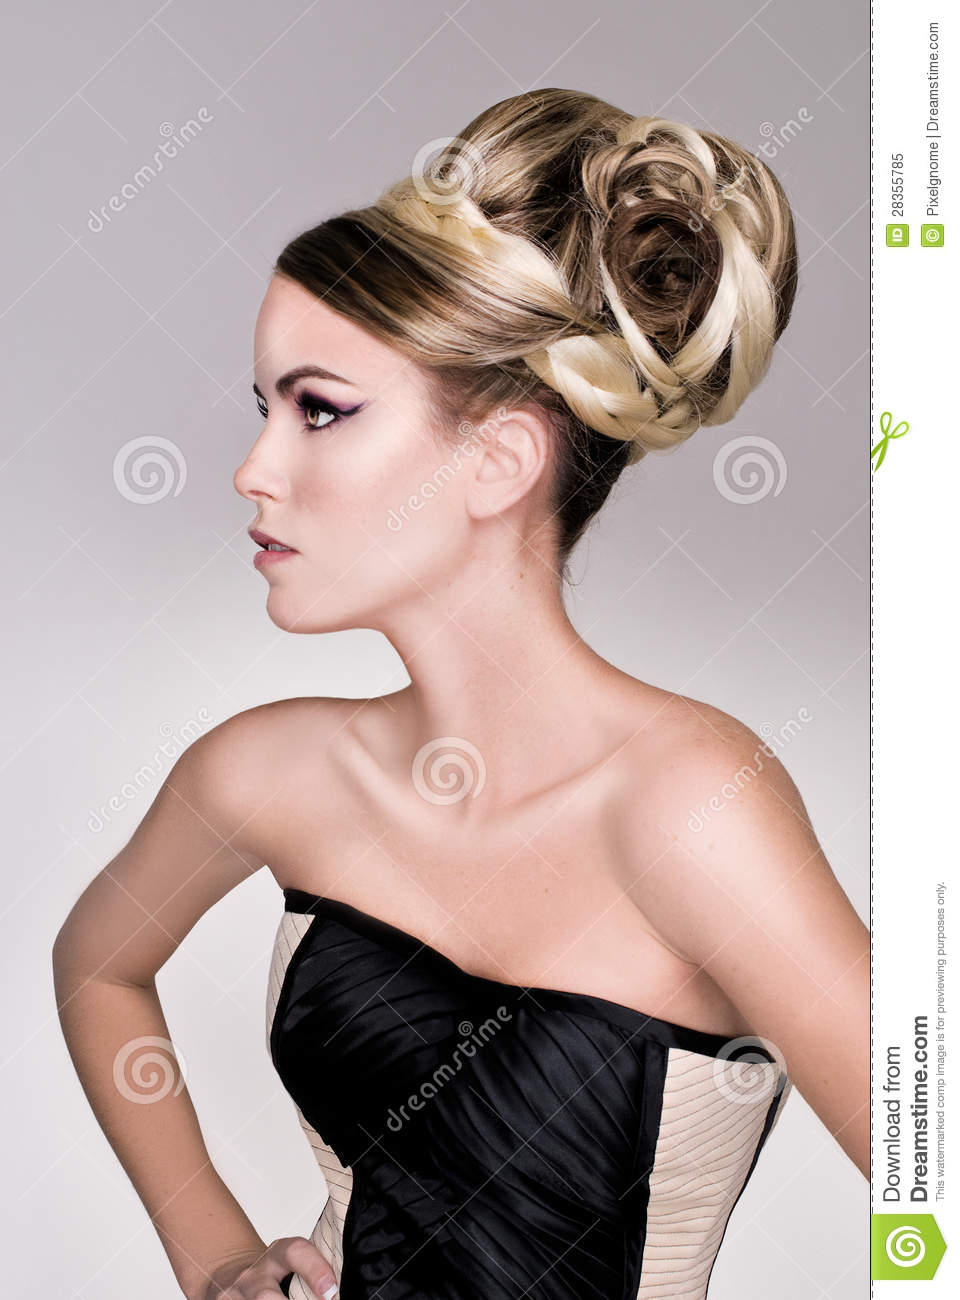 Salon fashion hair model royalty free stock photo image for Photo salon